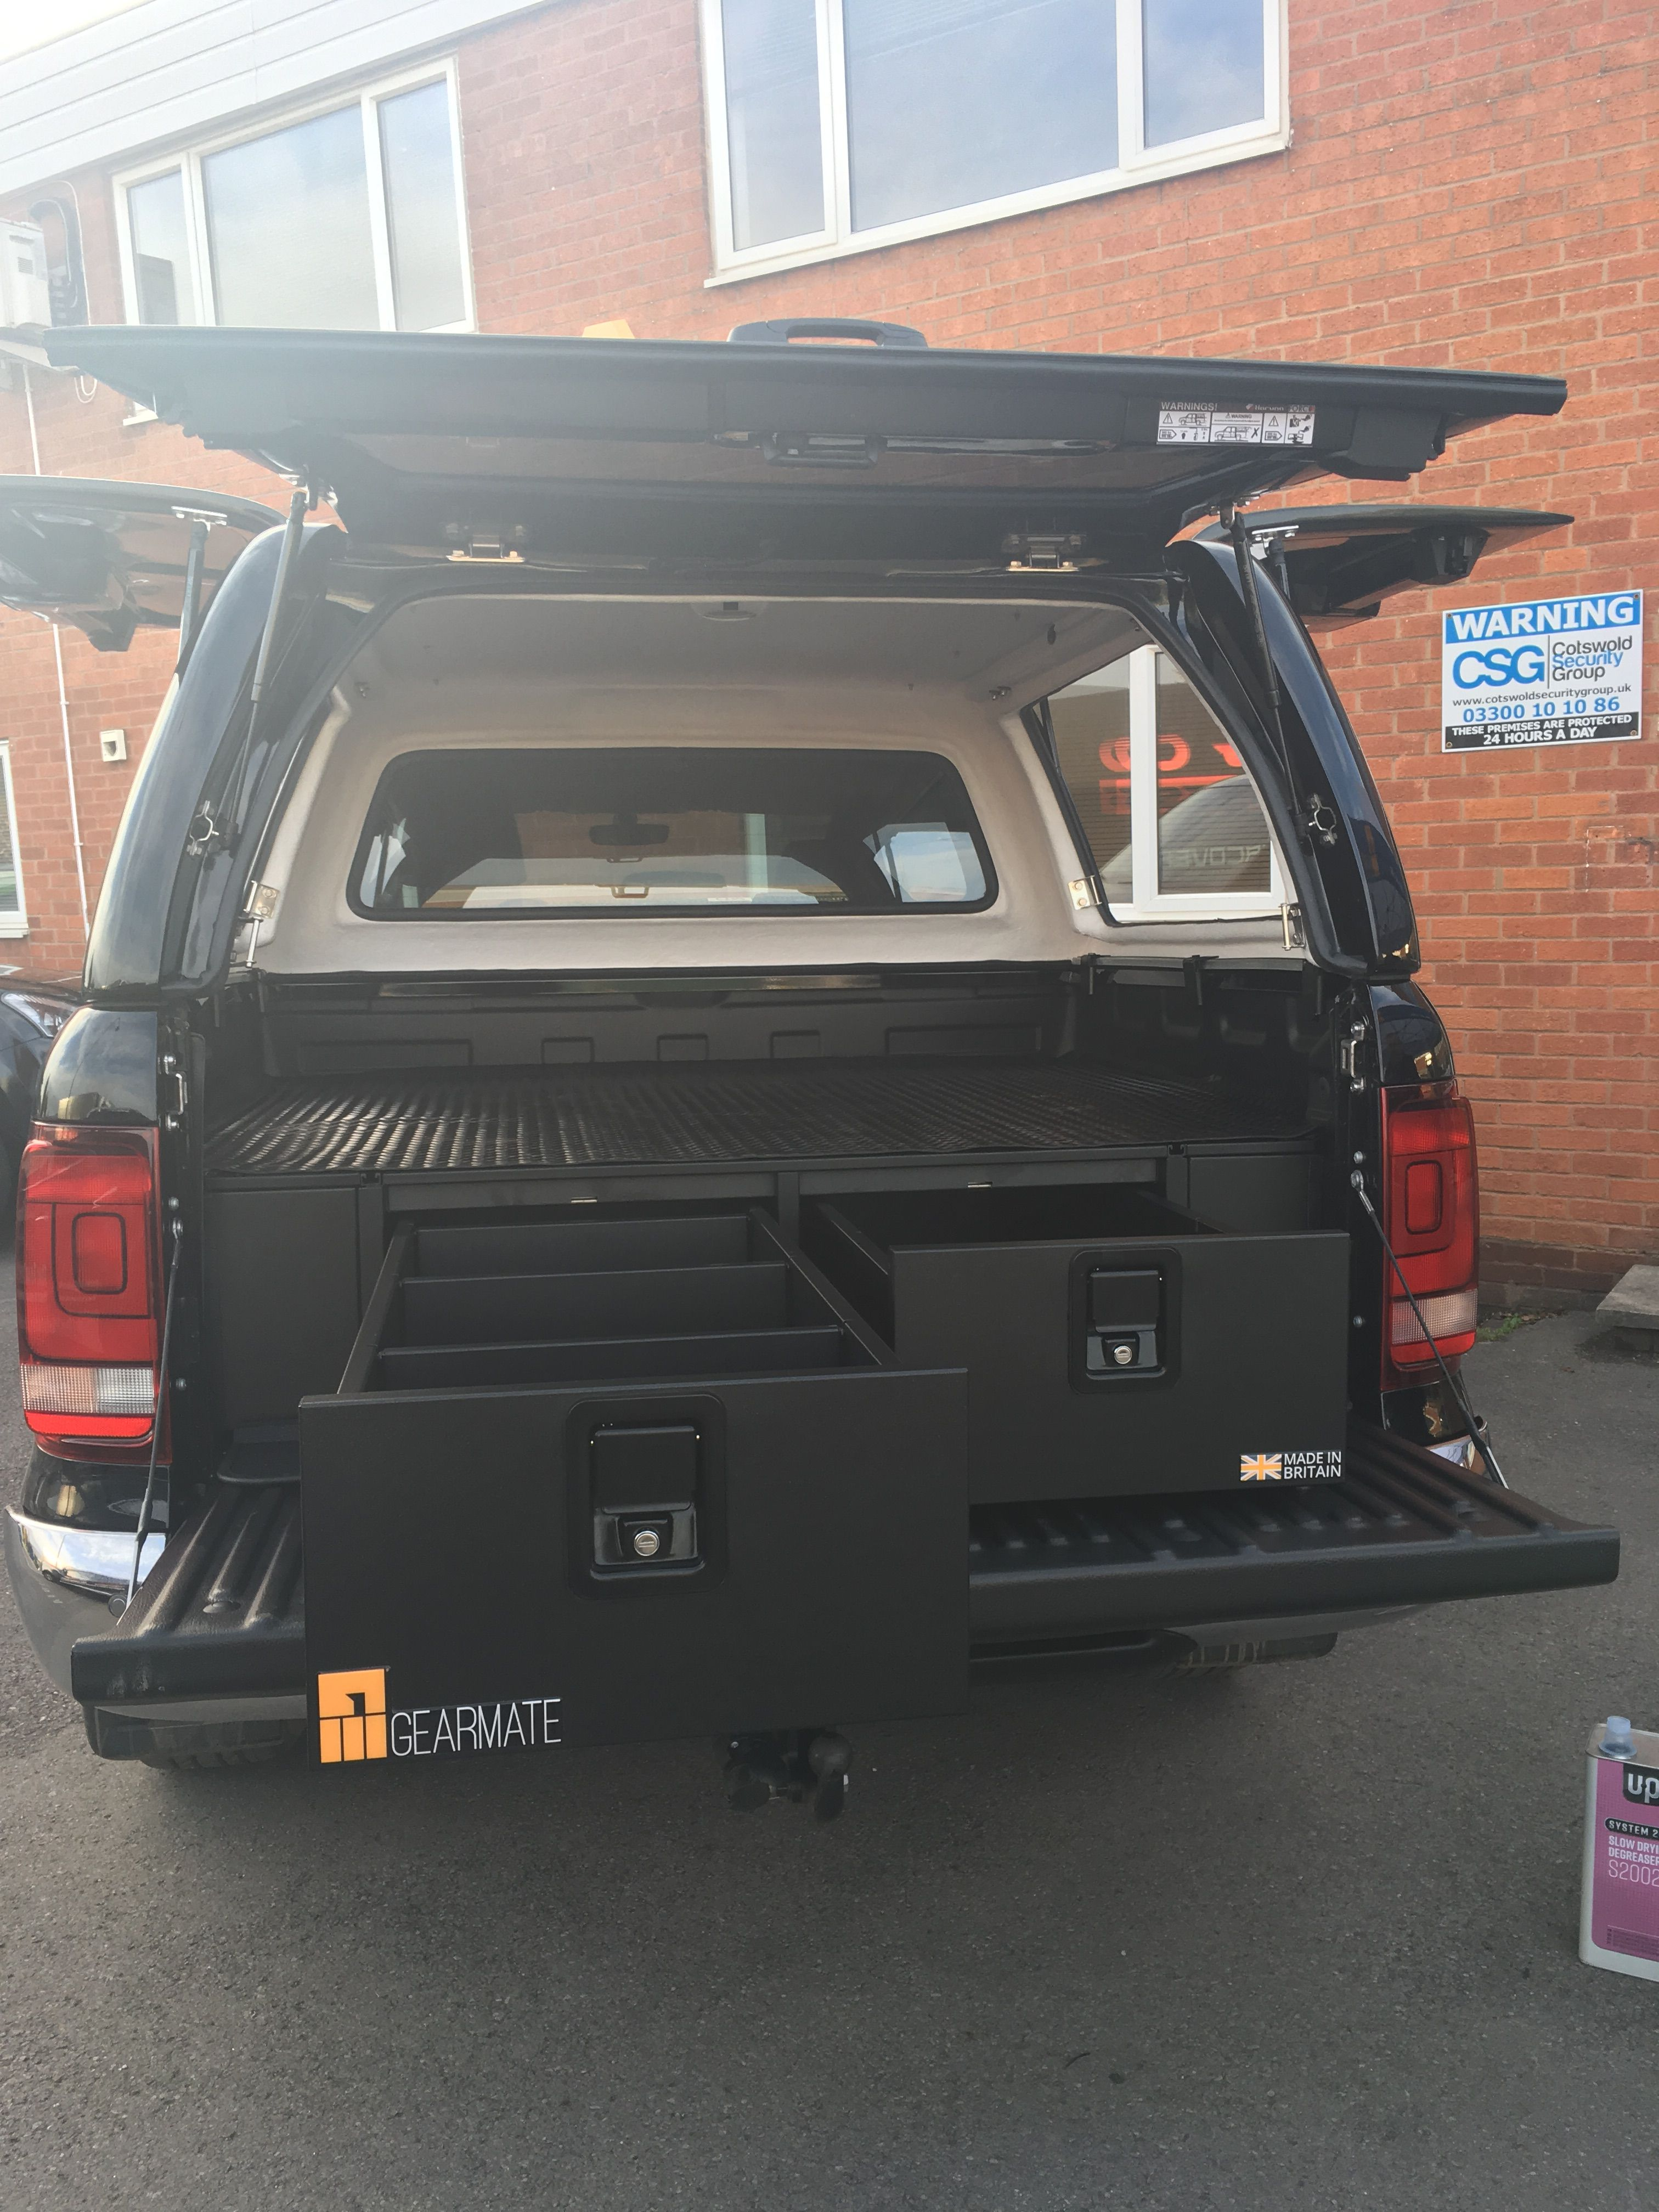 Volkswagen Amarok Fitted With Gearmate 300mm Twin Drawers Infill